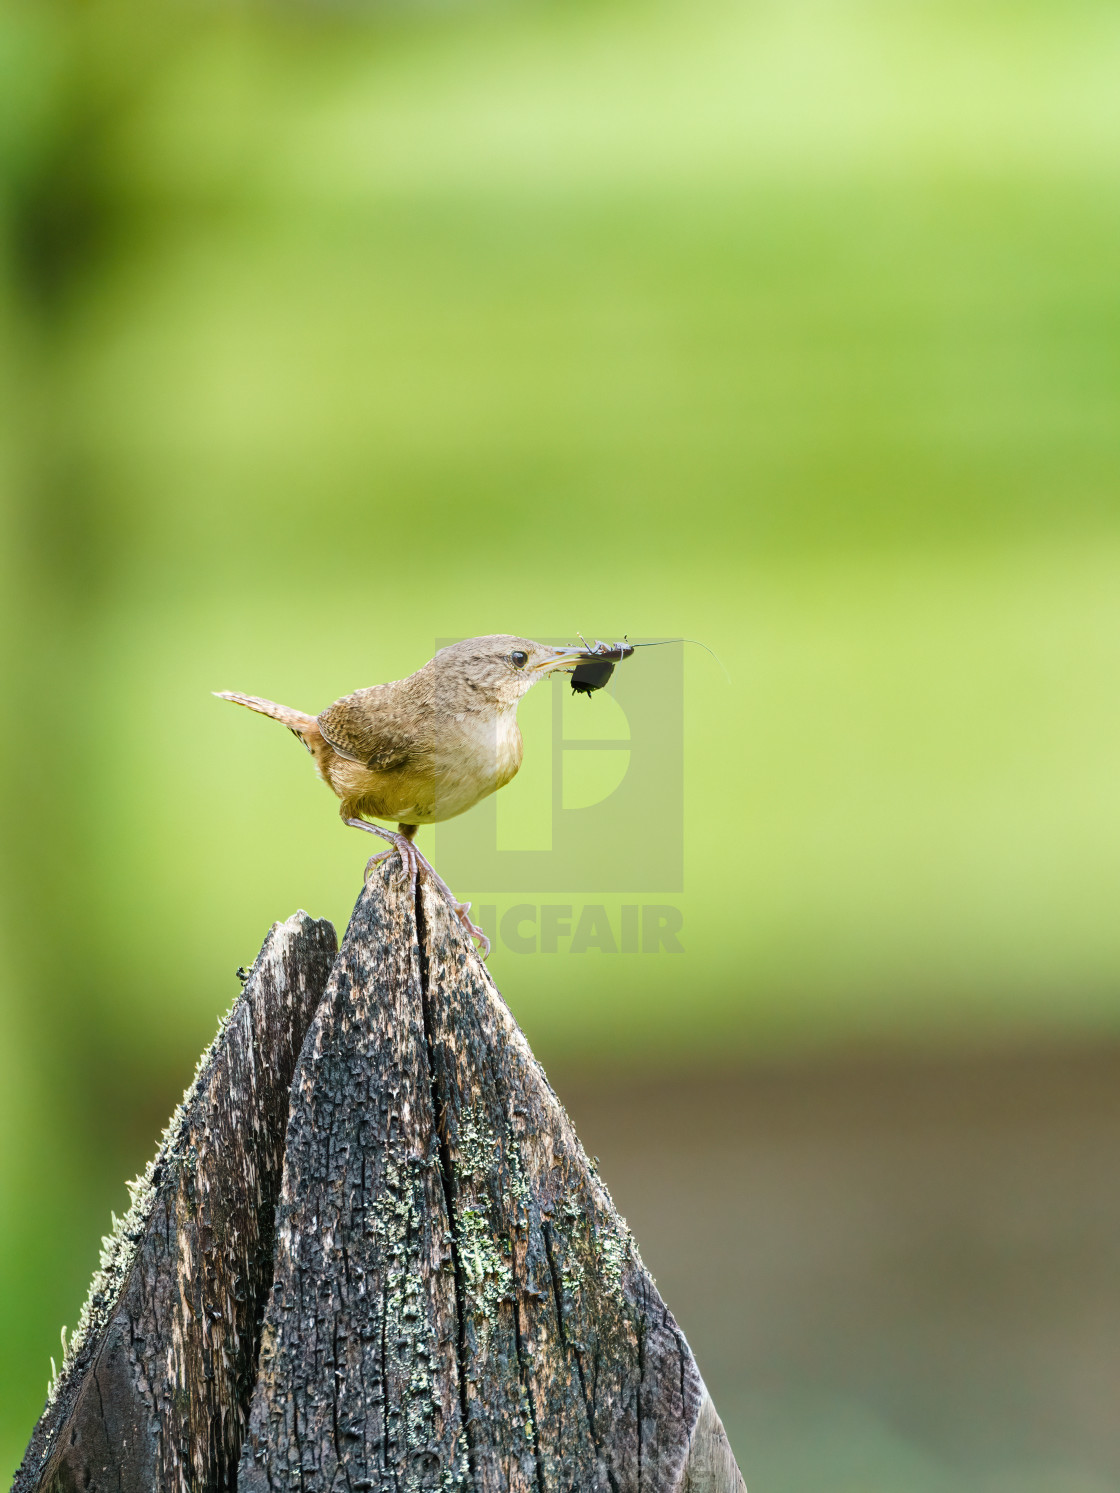 """House Wren (Troglodytes aedon) perched on a fence post, in Costa Rica"" stock image"